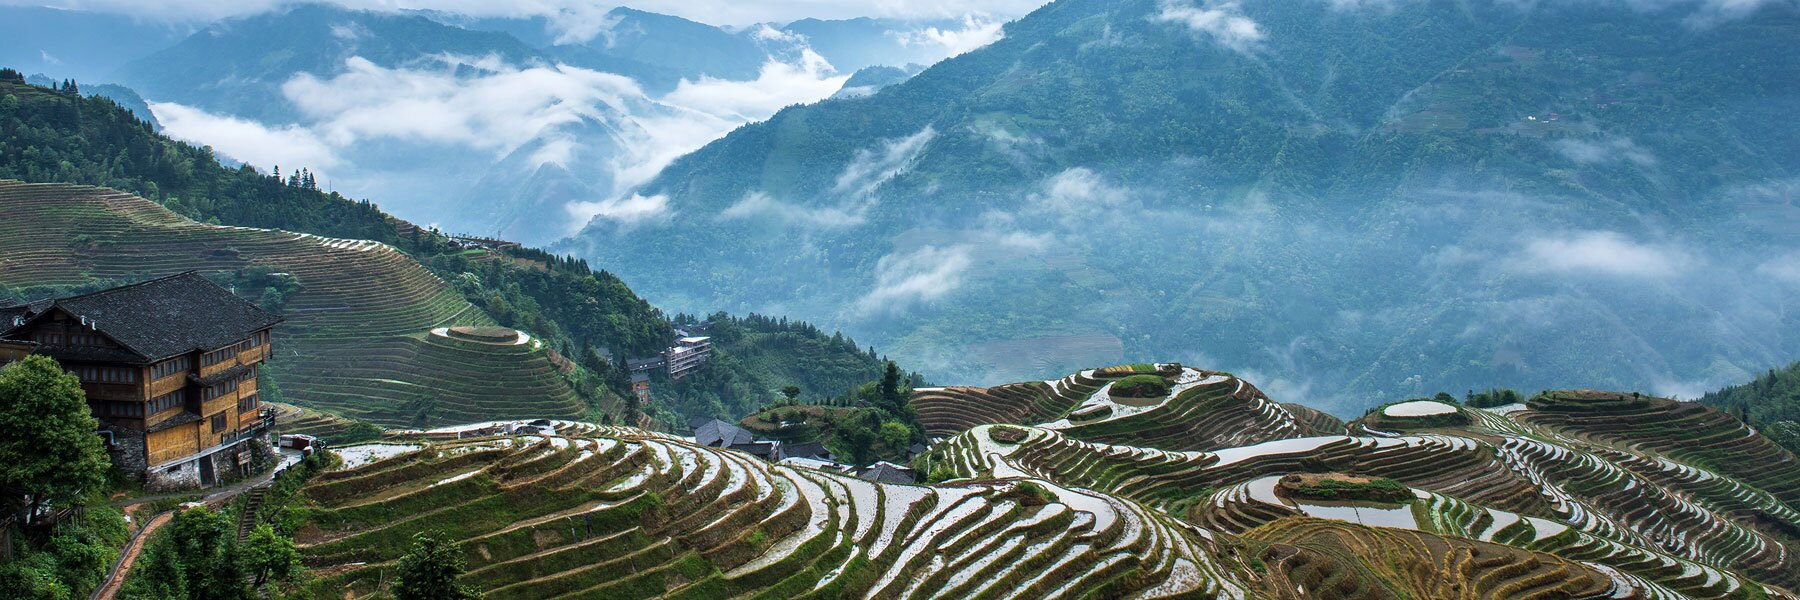 Longsheng Pingan Terraced Field